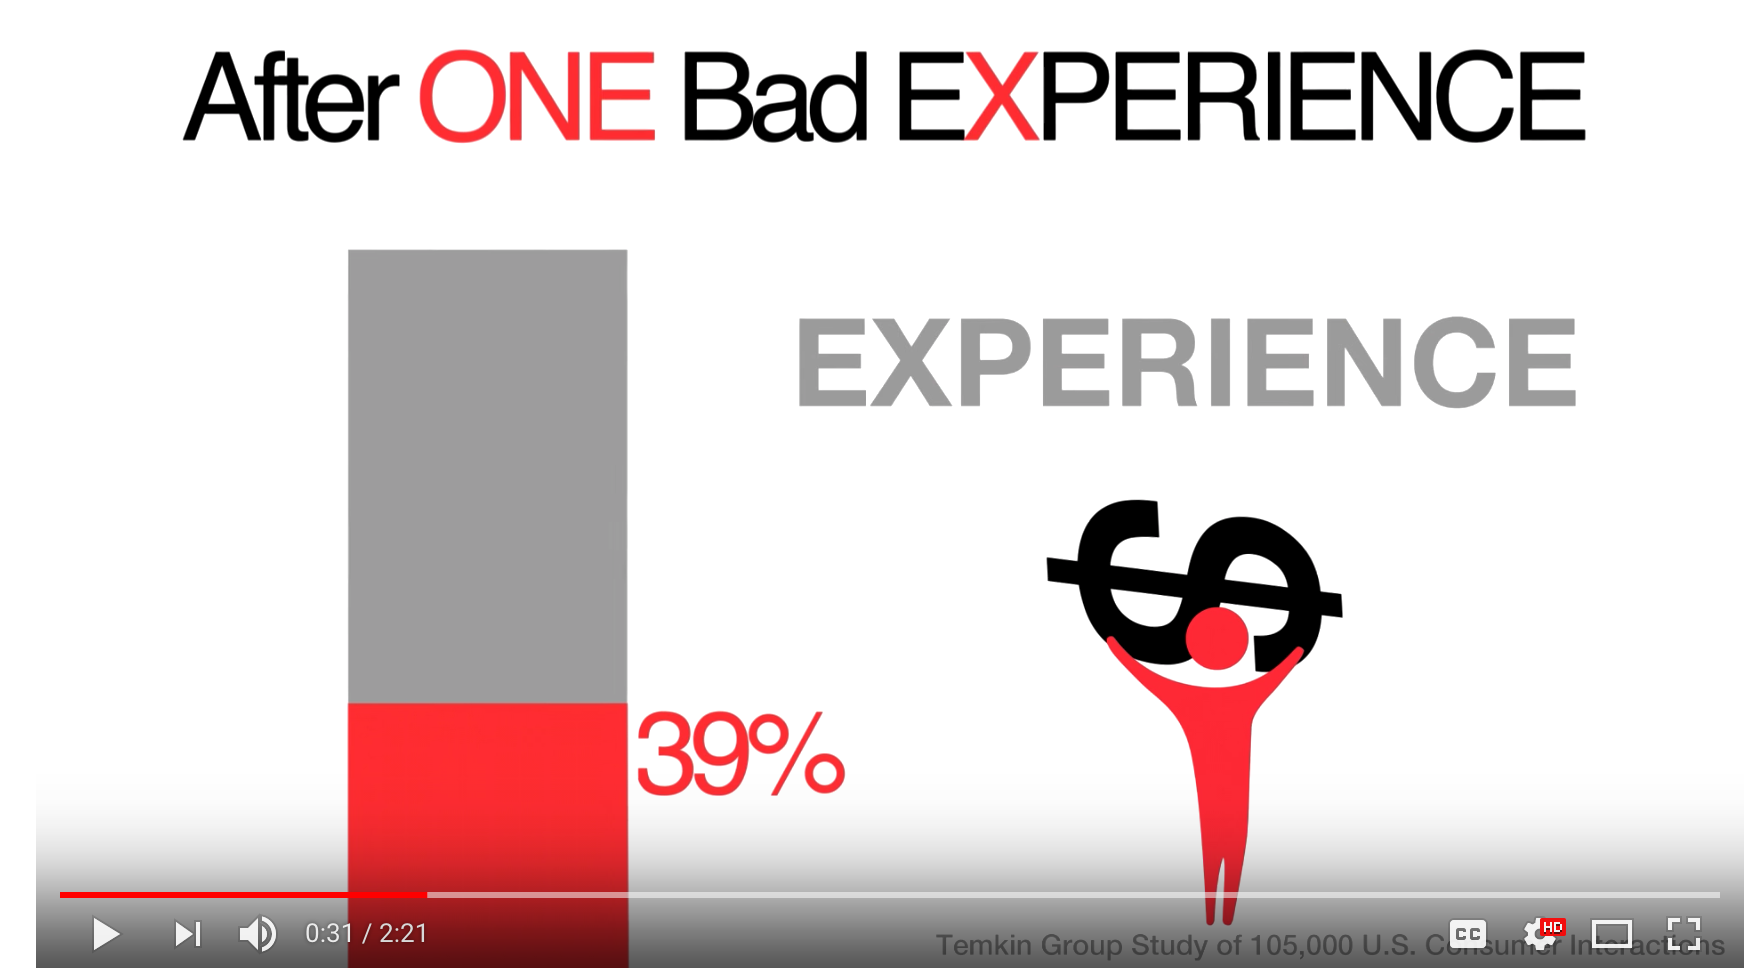 Customer Experience Matters - Temkin Group Video